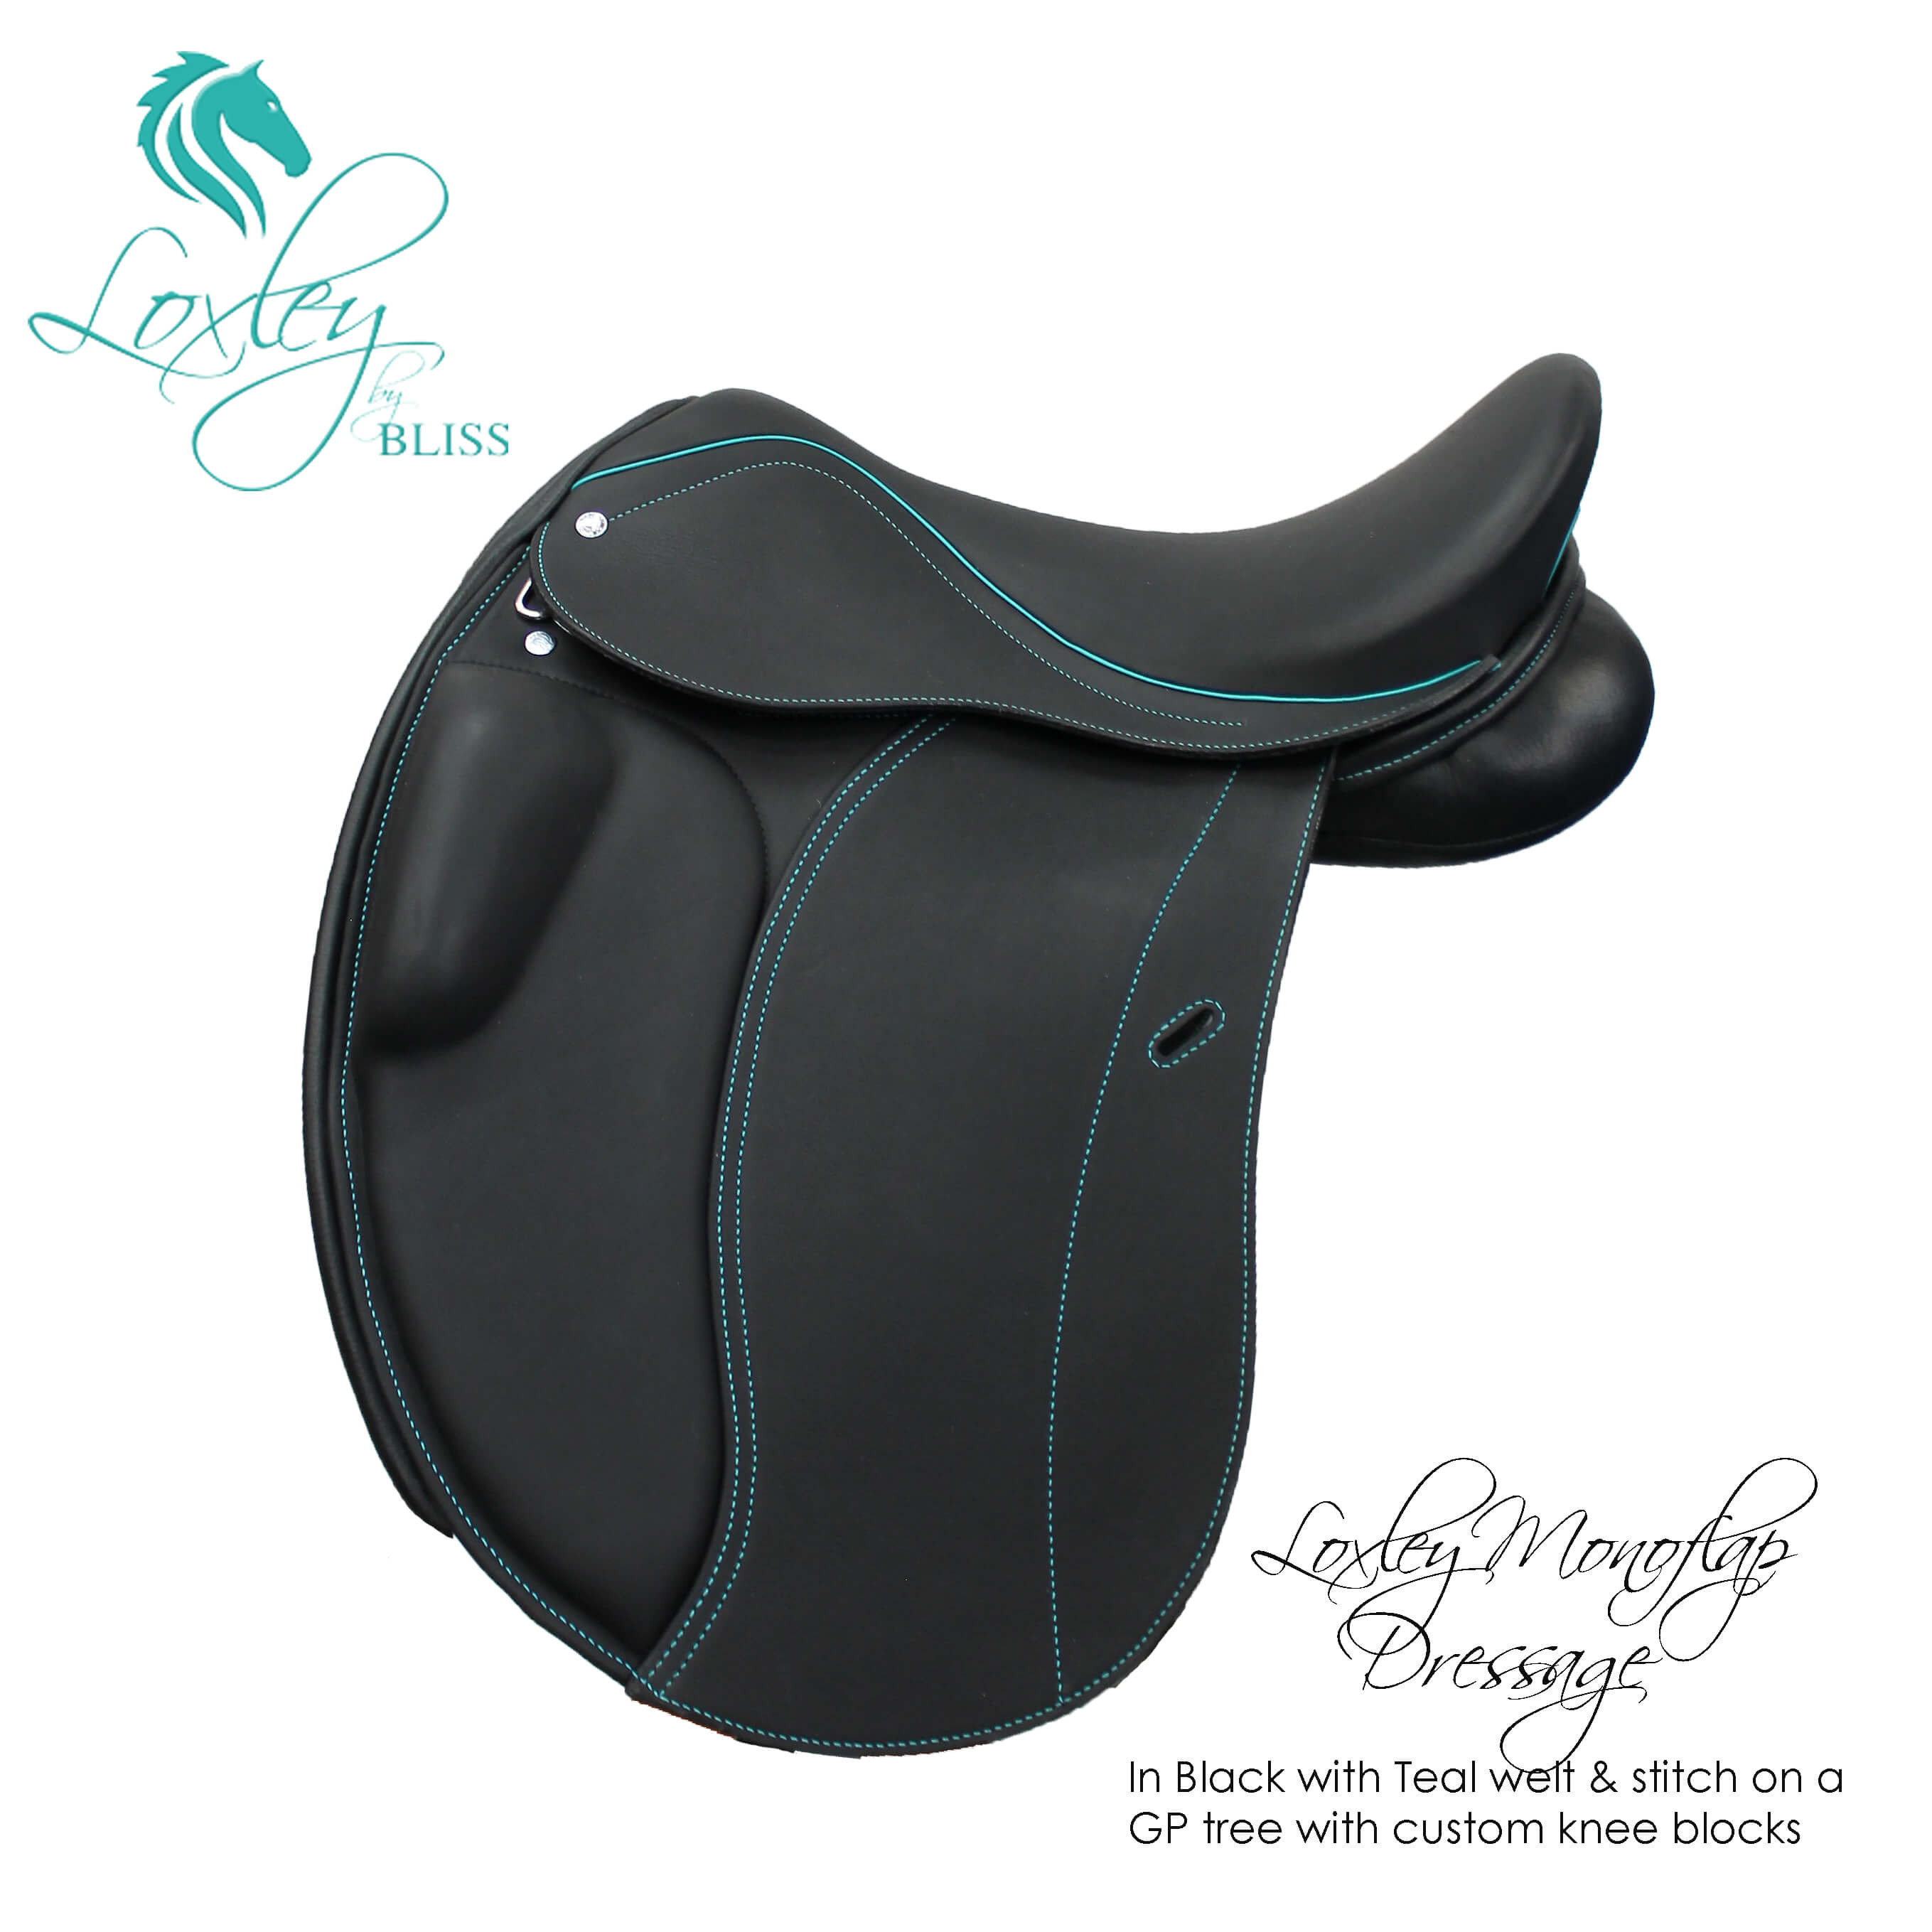 9 Loxley Dressage mono GP tree endurance block black teal